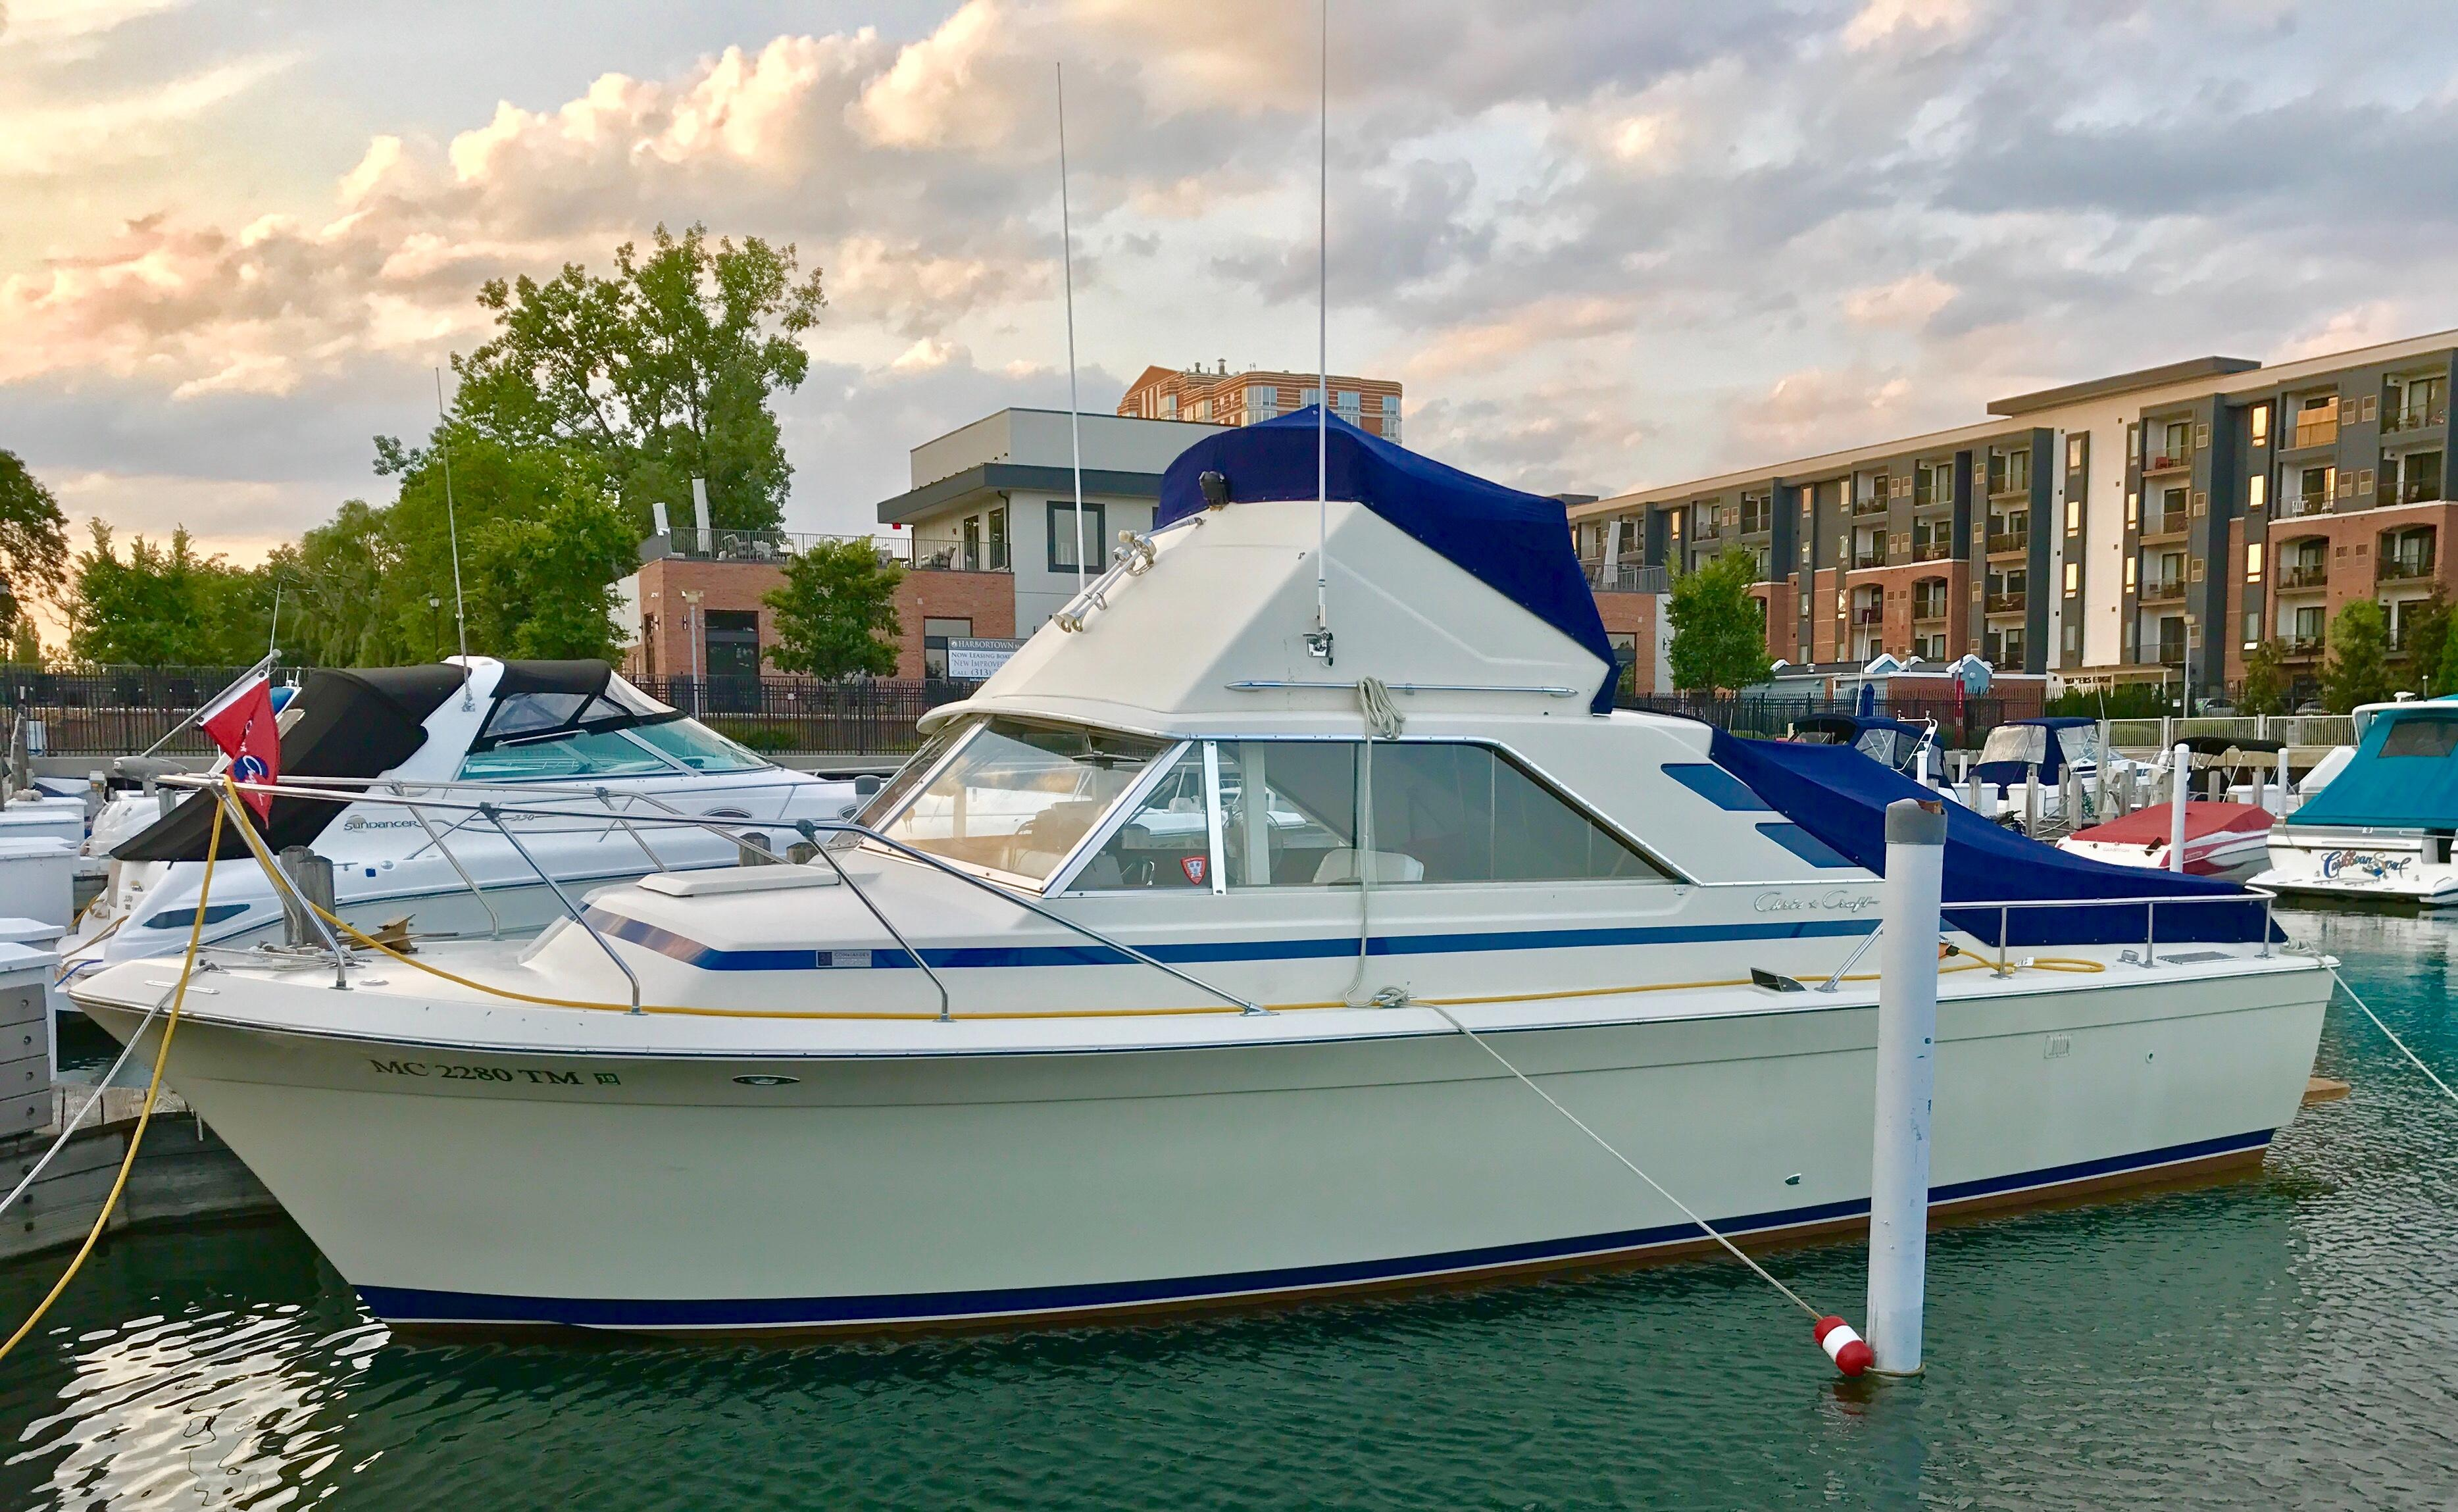 hight resolution of 1973 chris craft 315 commander power boat for sale www yachtworld com chris craft model a engine diagram